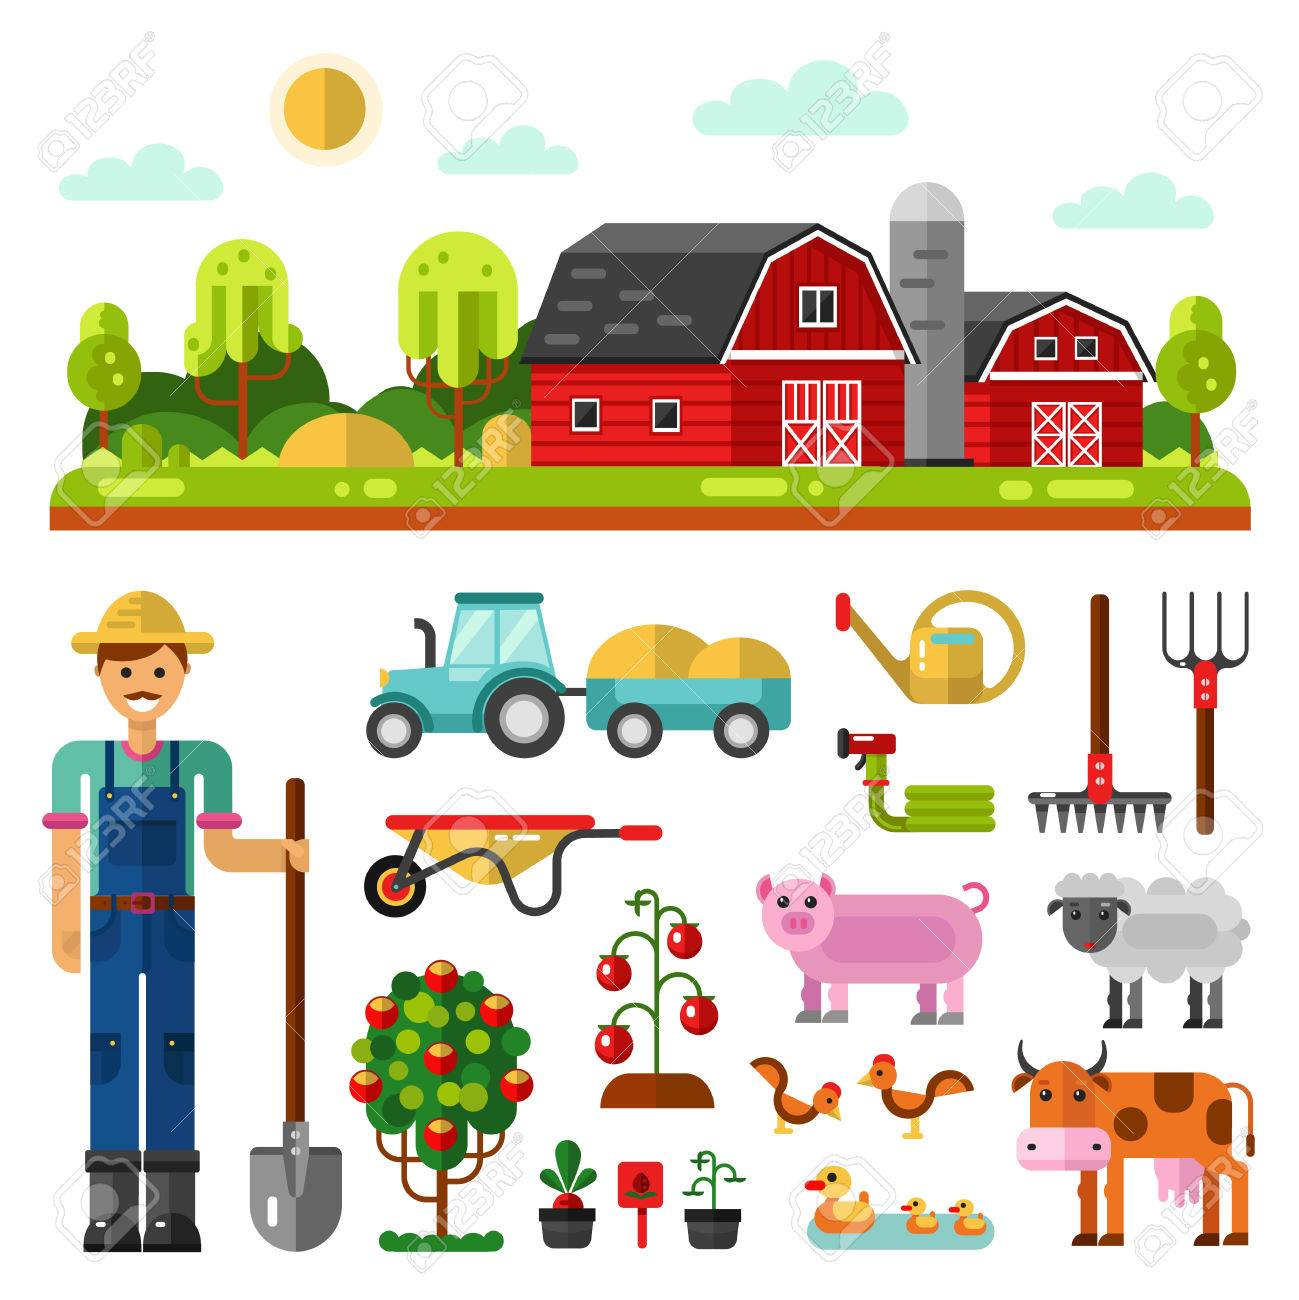 Flat Vector Landscape Illustration With Farm Building Barn Including Icons Of Tractor